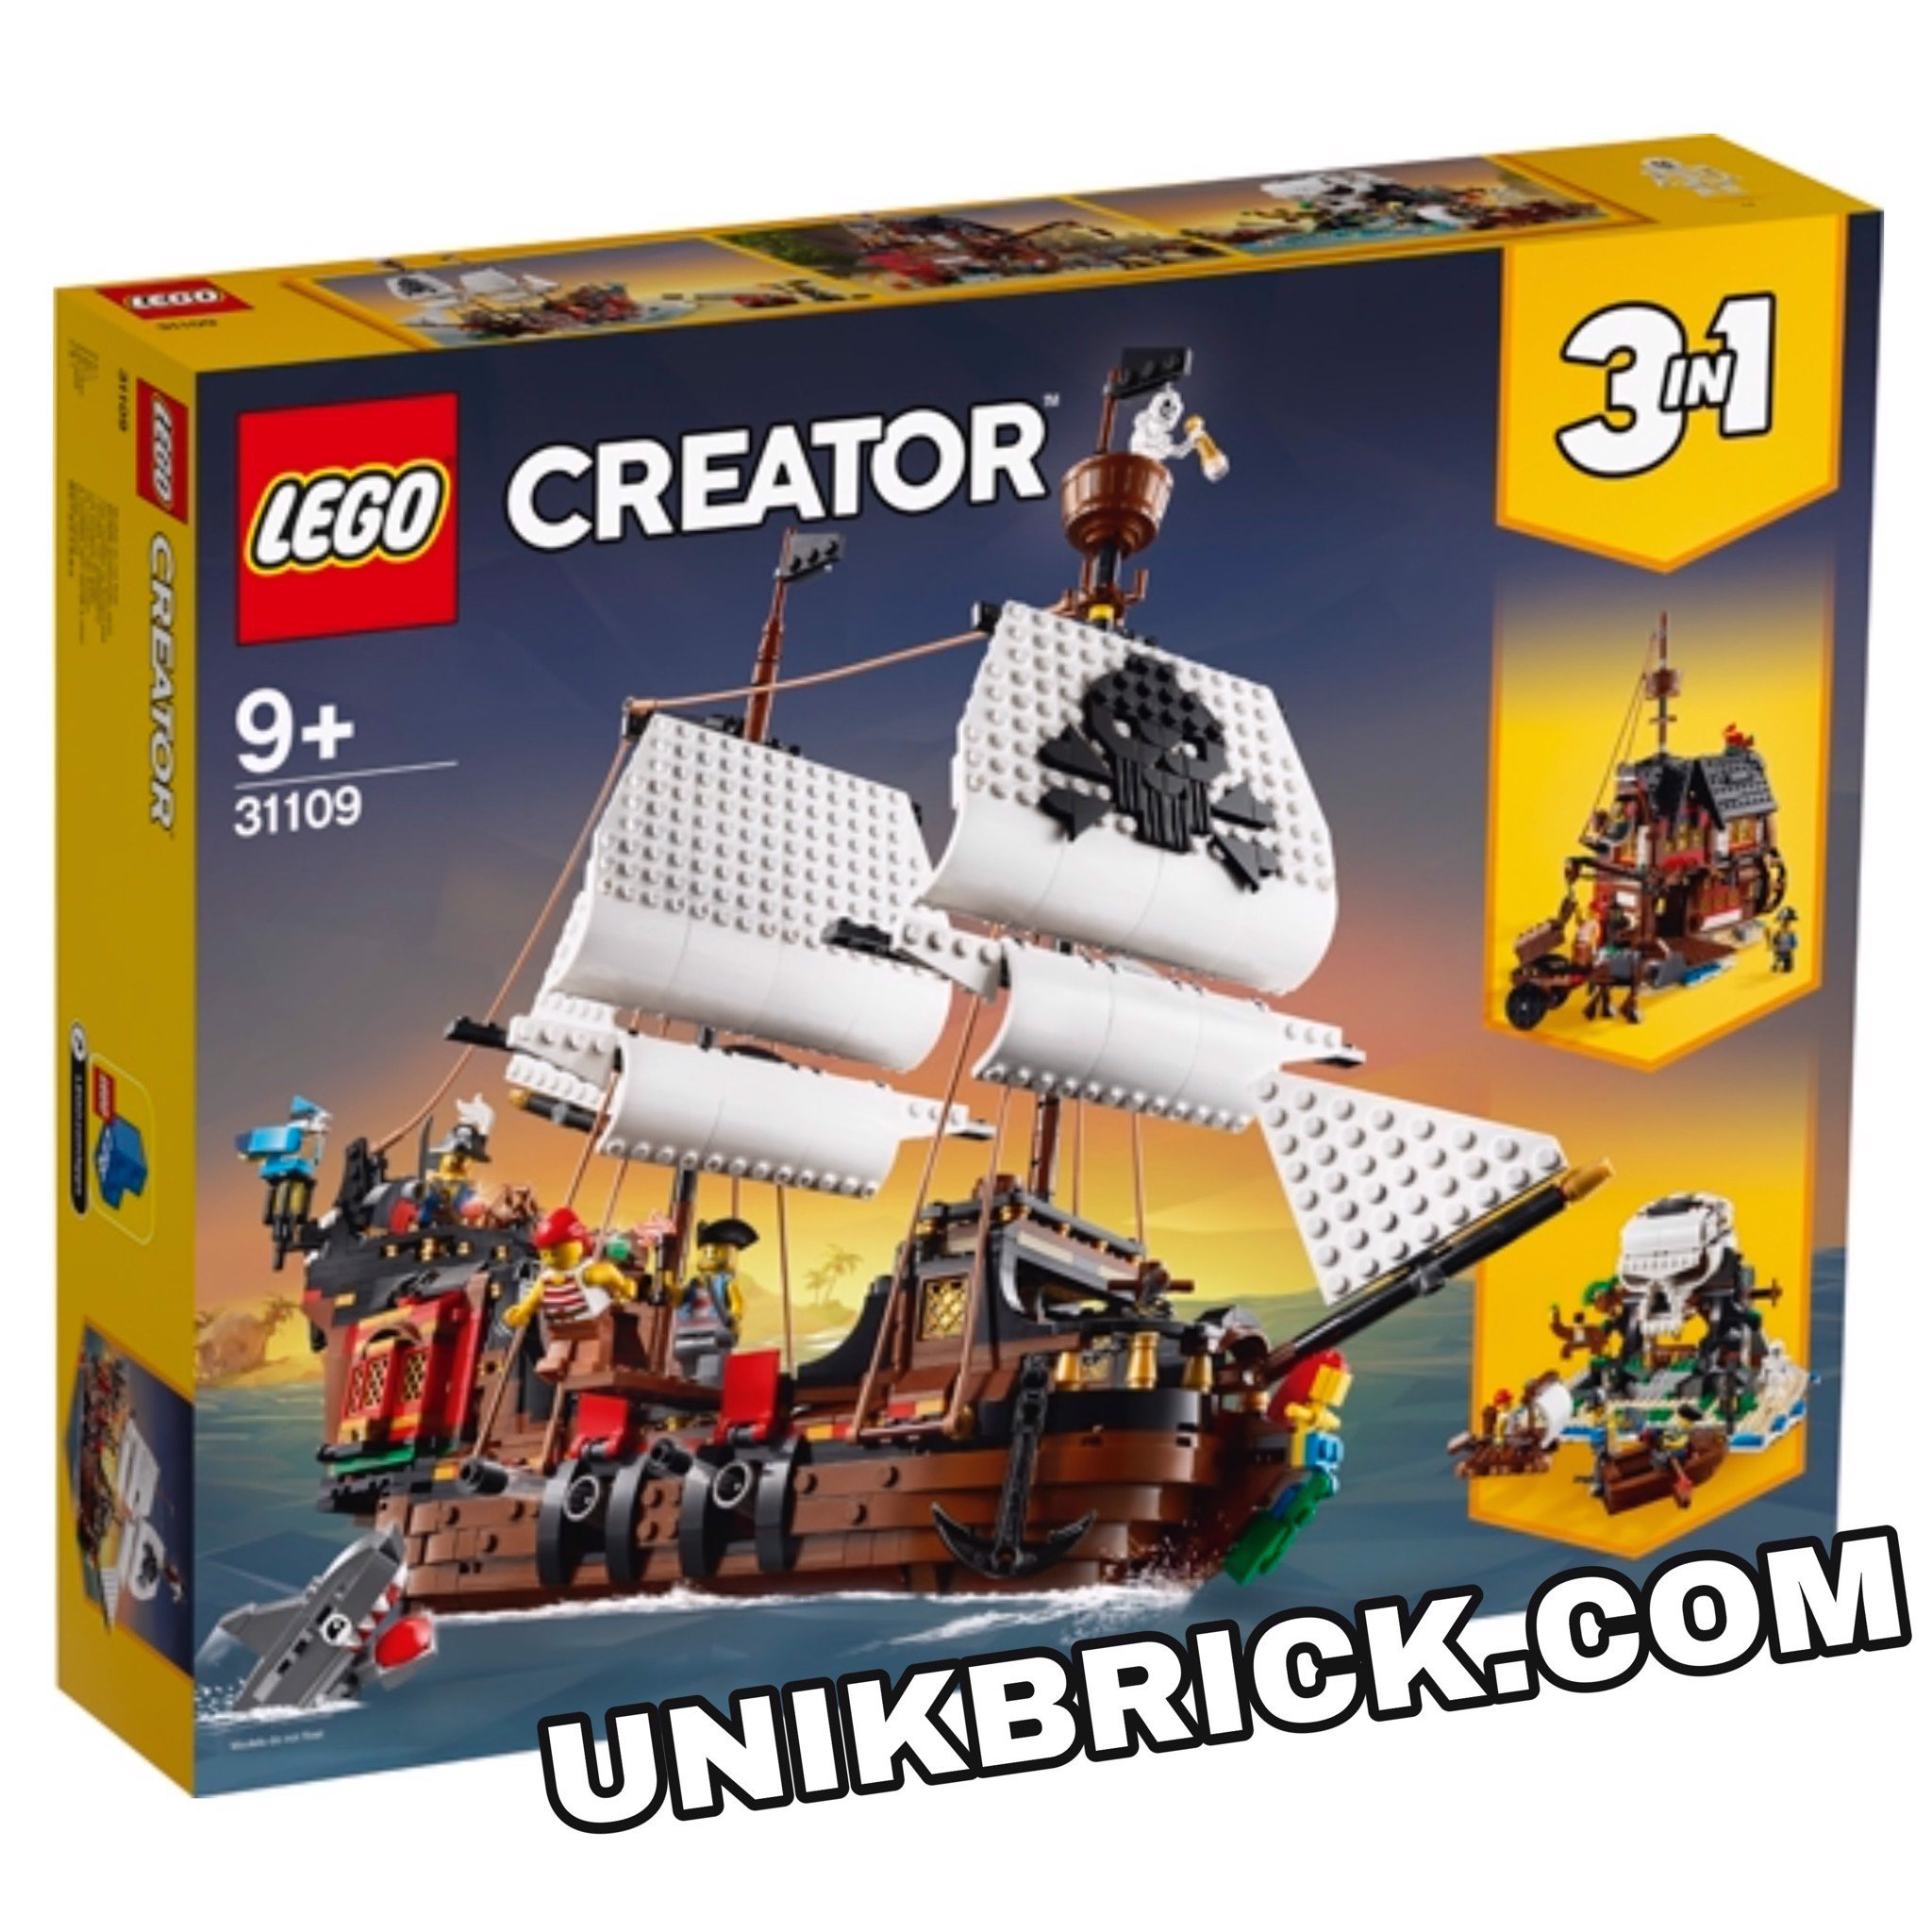 [HÀNG ĐẶT/ ORDER] LEGO Creator 31109 Pirate Ship 3 IN 1